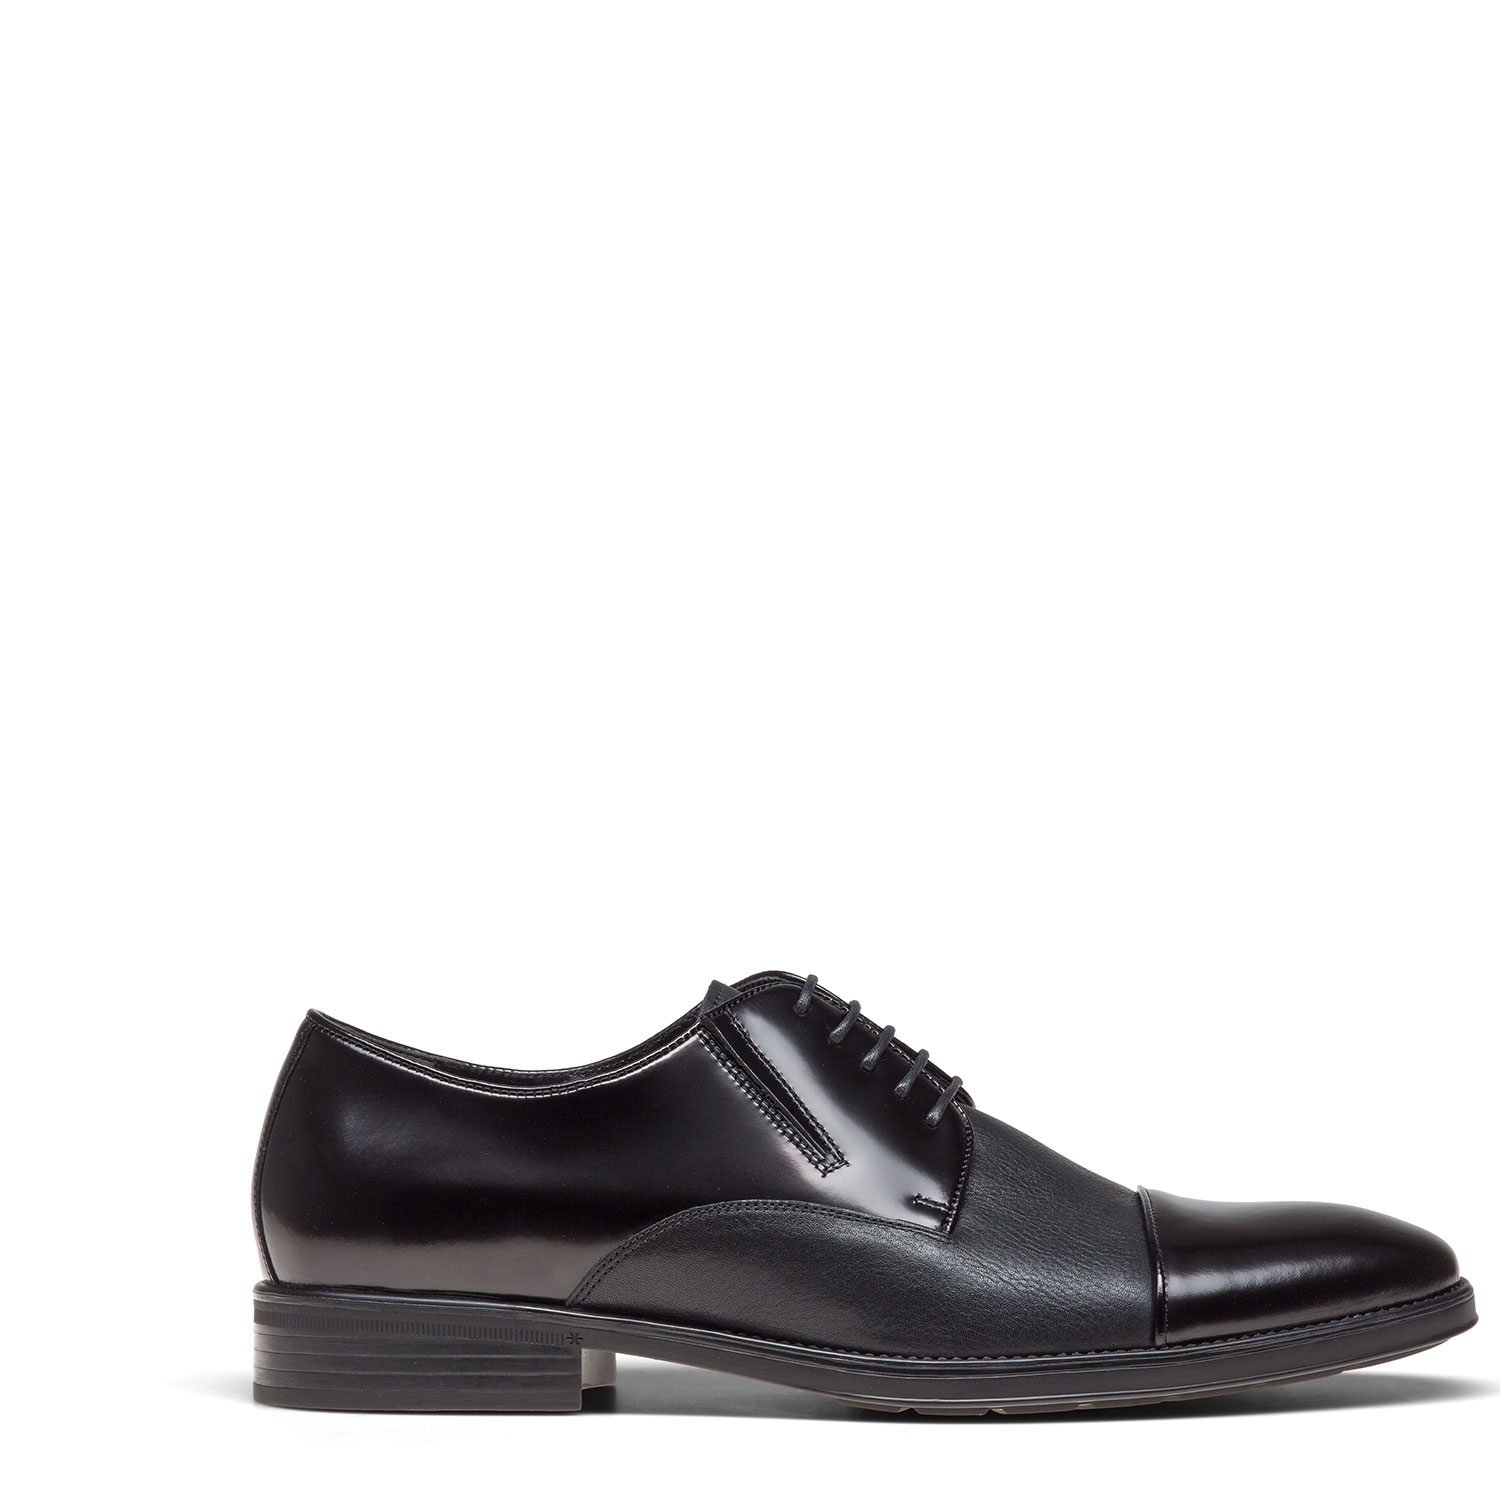 Men's shoes CARLO PAZOLINI HM-ILA1-1